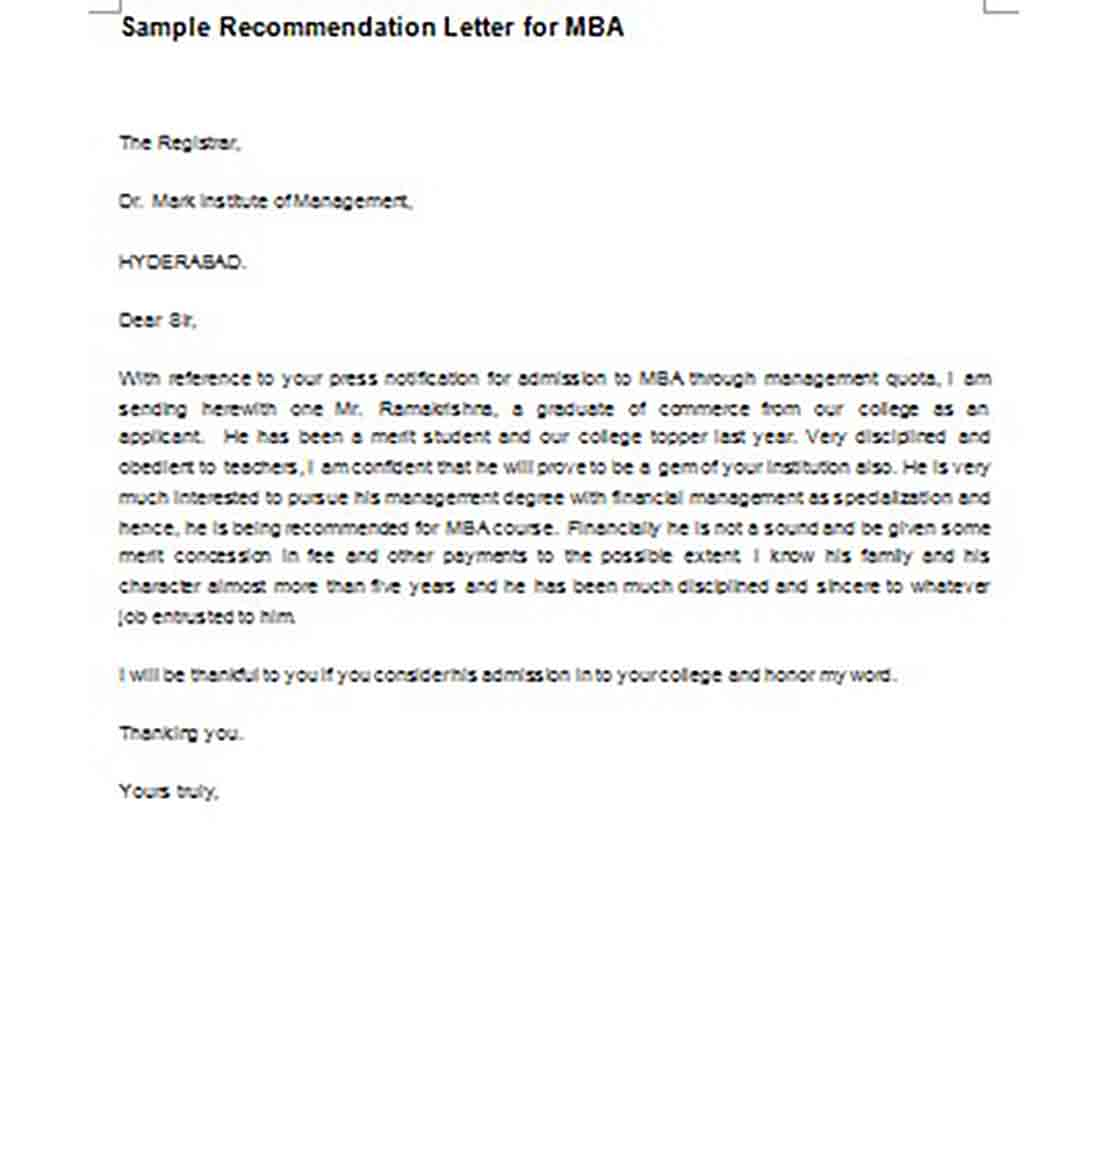 Sample Recommendation Letter for MBA